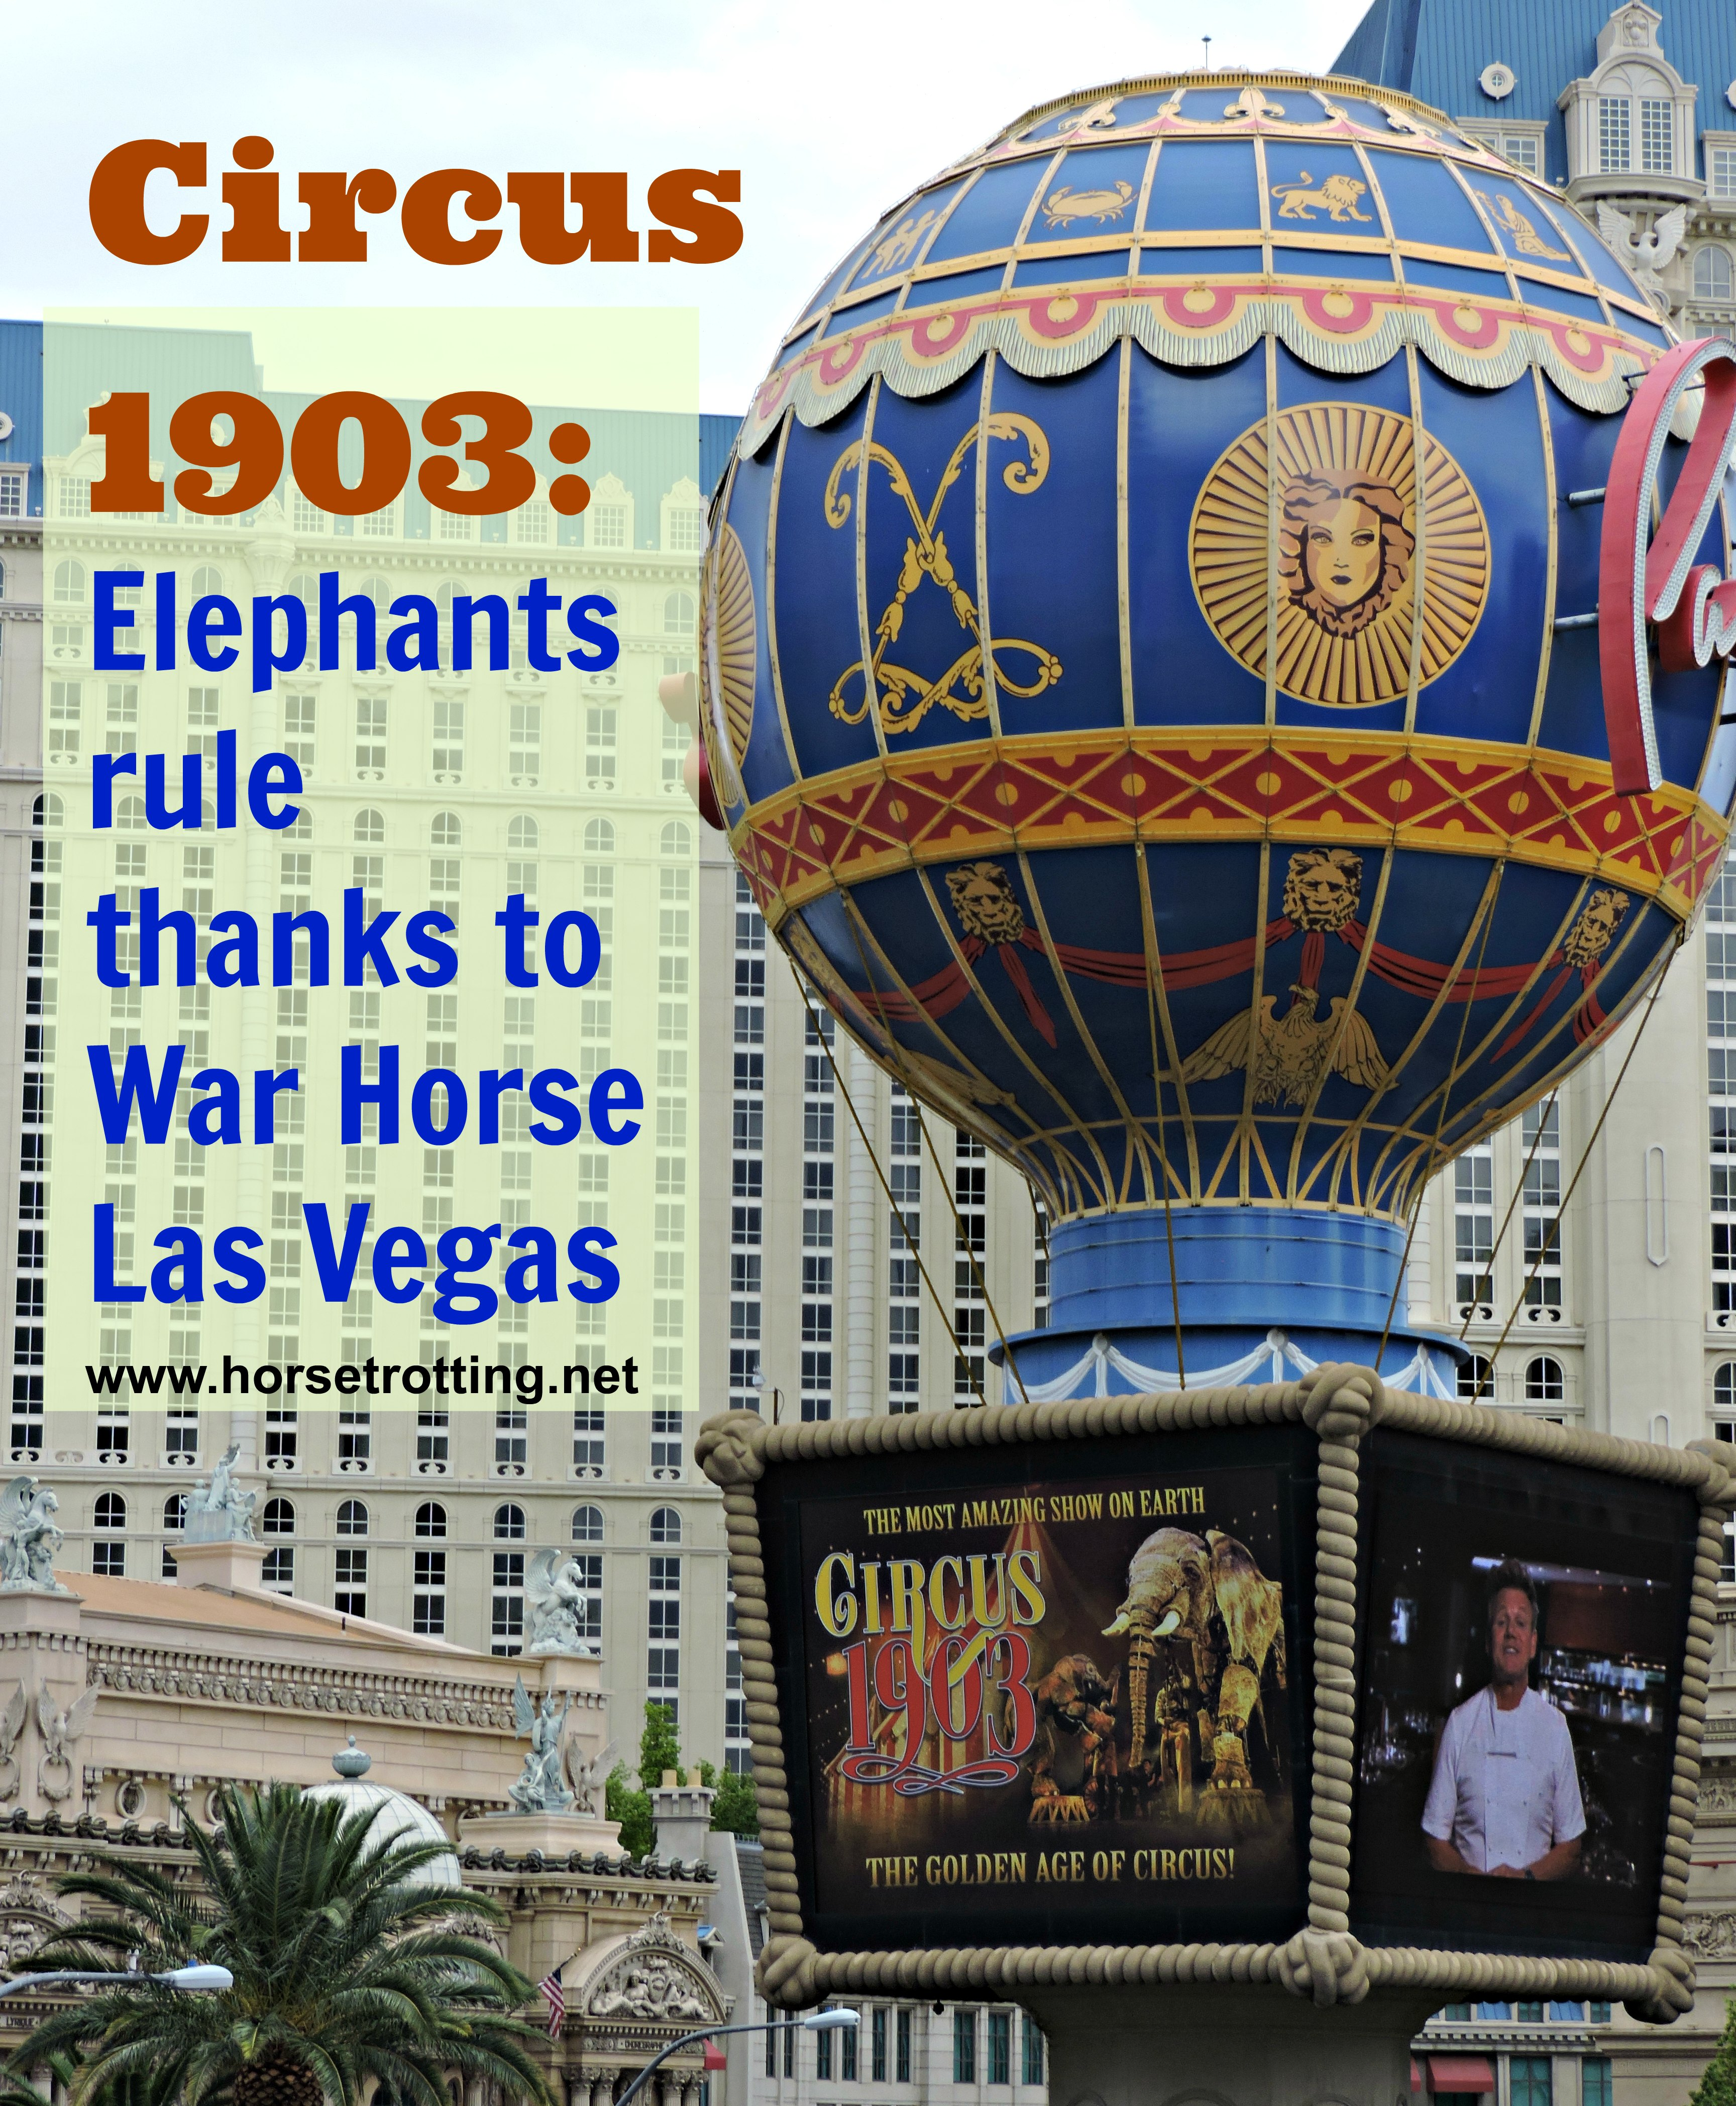 War Horse goes to the circus – Circus 1903 in Las Vegas, NV